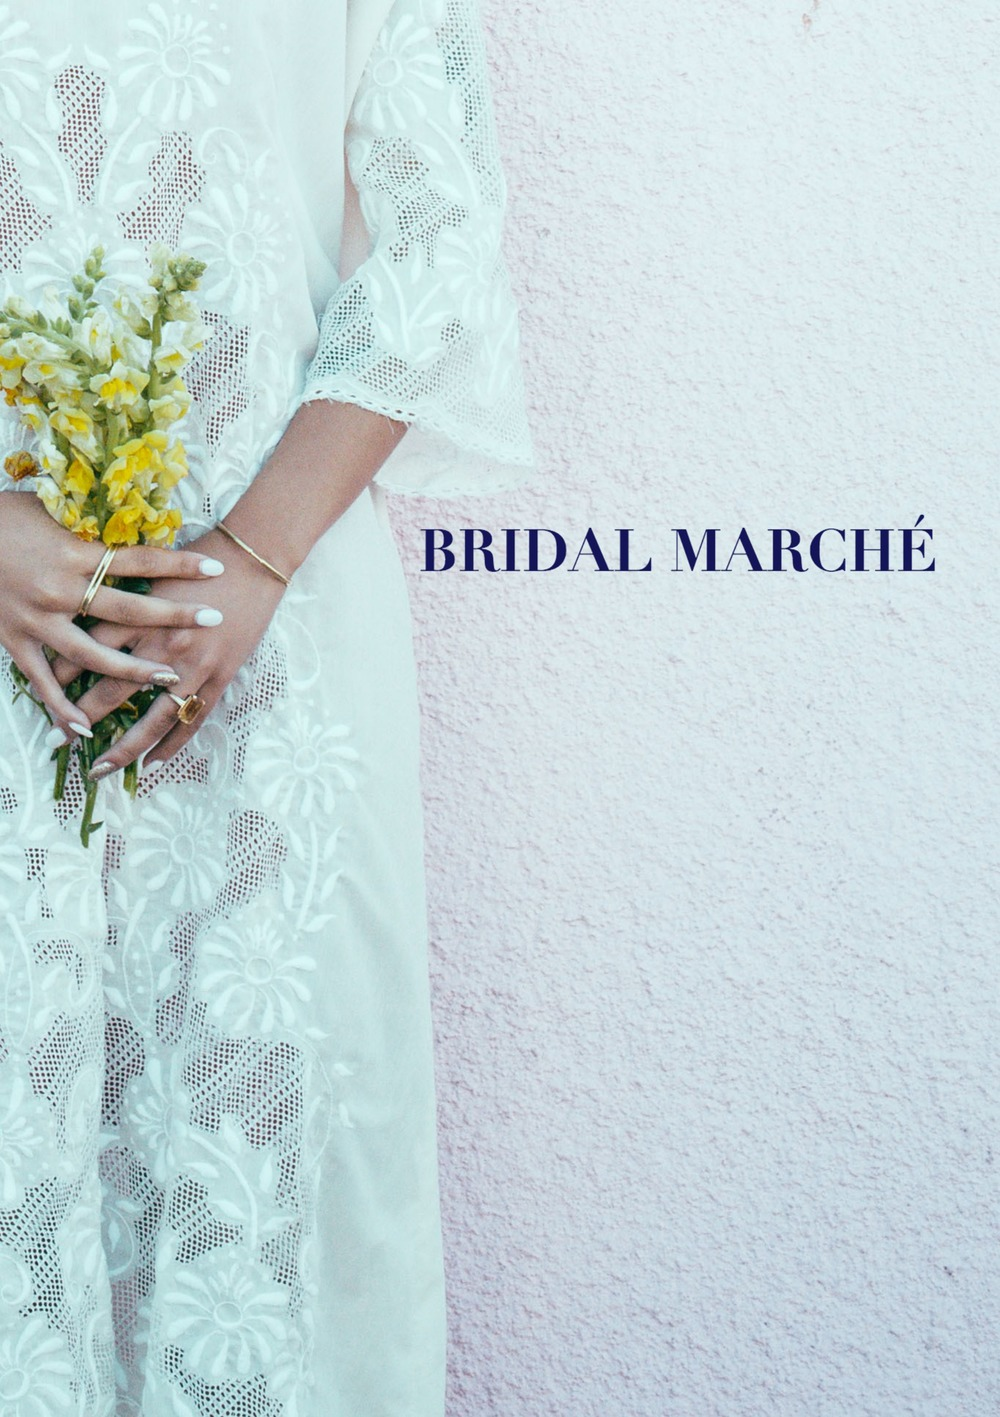 Bridal Marché Lookbook - Cover.jpeg